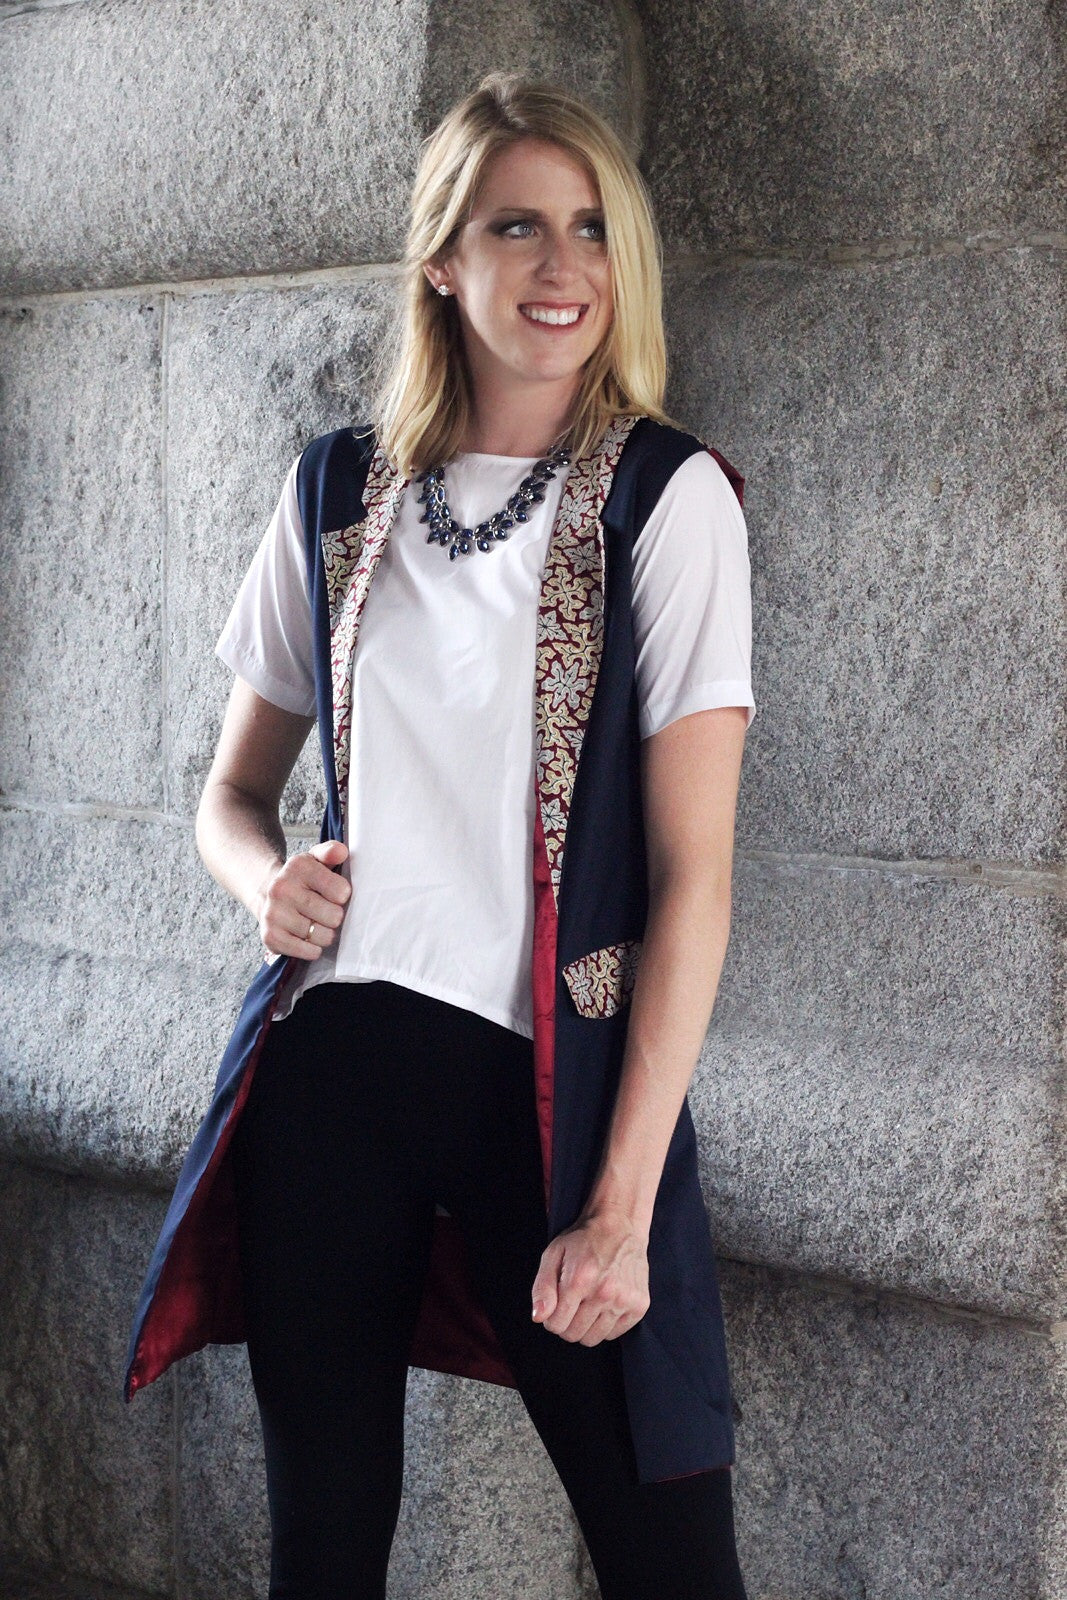 Sharon Navy Blue and Maroon Vest